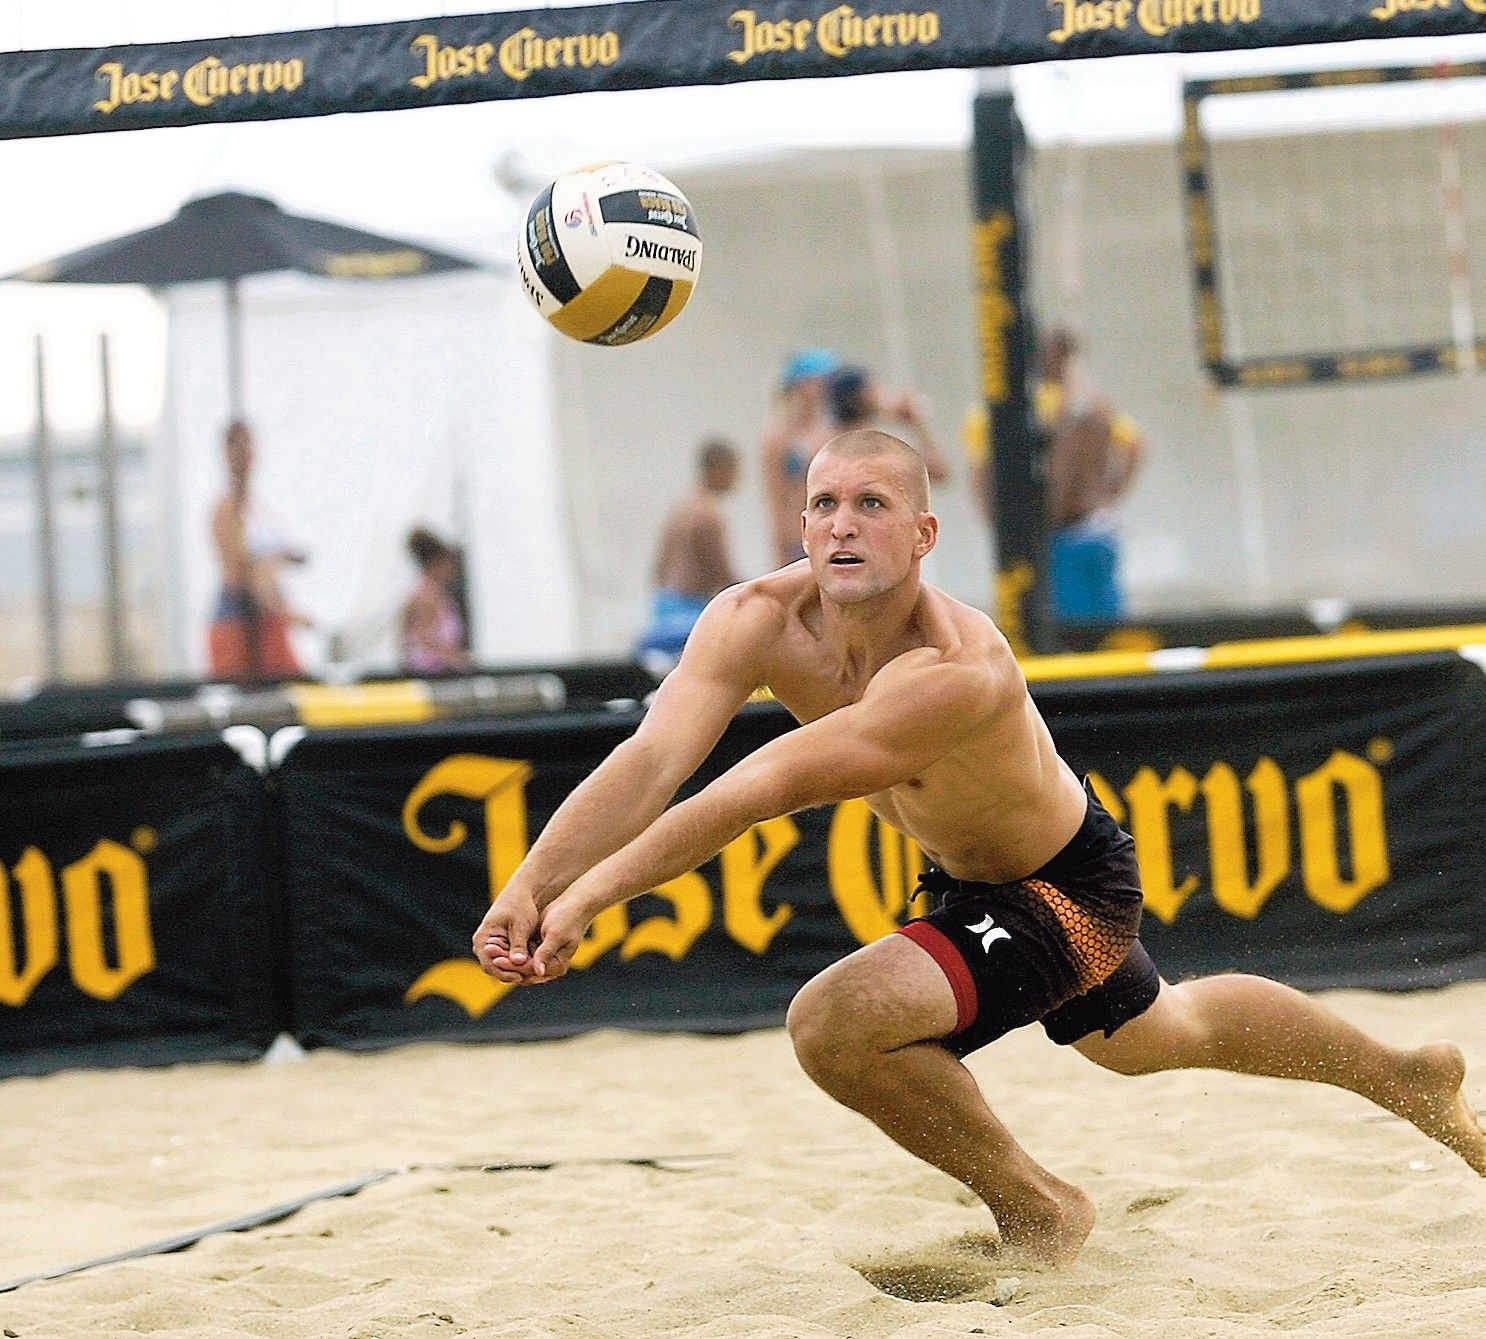 Dan Sempkowski Dives For The Ball During The Match At The Jose Cuervo Pro Beach Volleyball Series Belmar Open Volleyball Volleyball Players Beach Volleyball